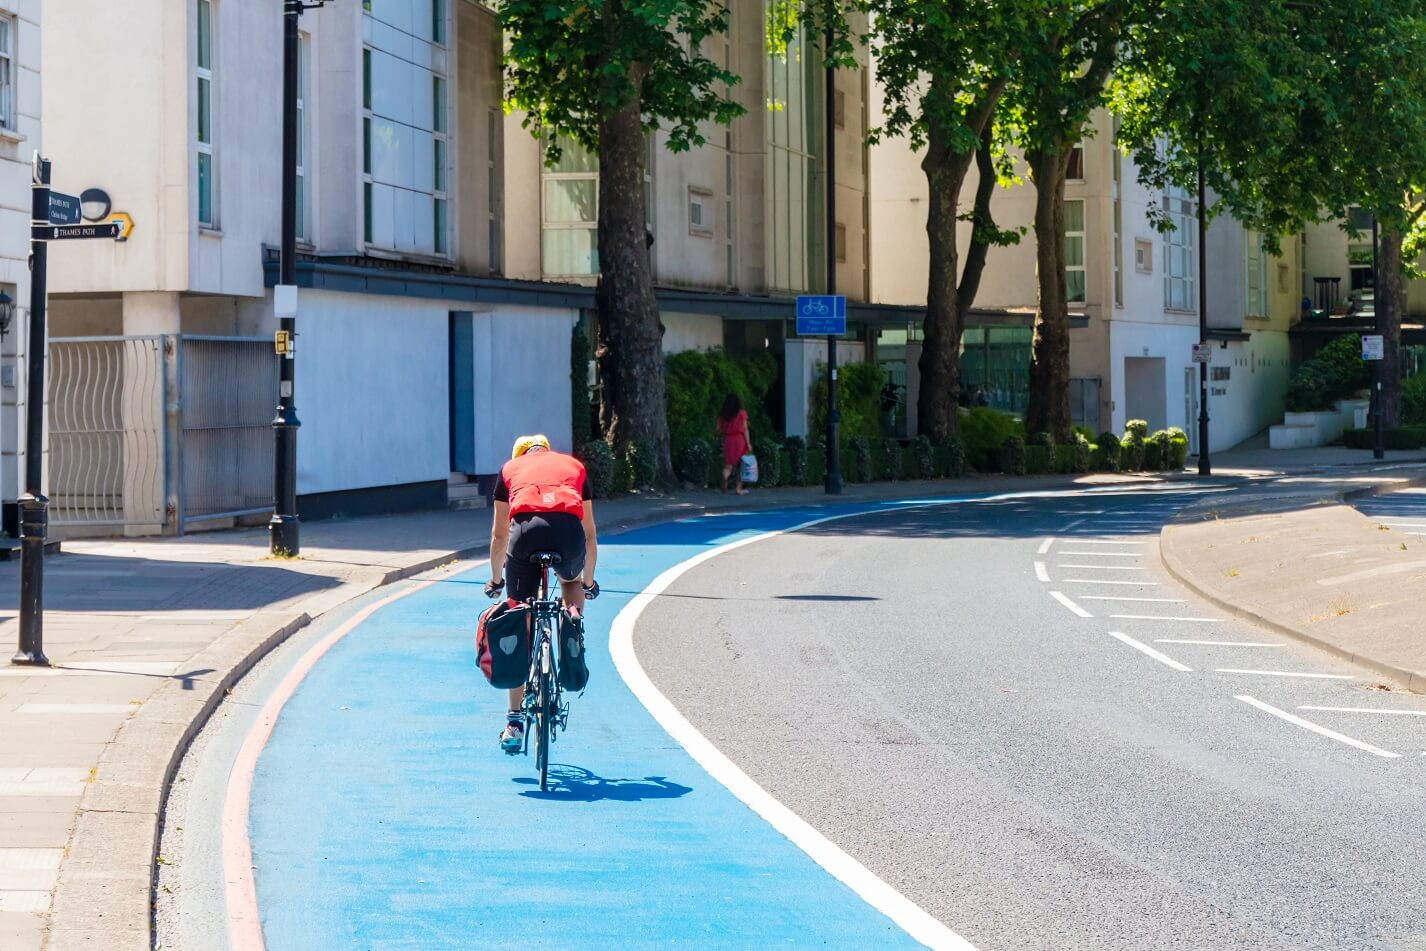 Safer journeys for cyclists and pedestrians thanks to Highways England scheme